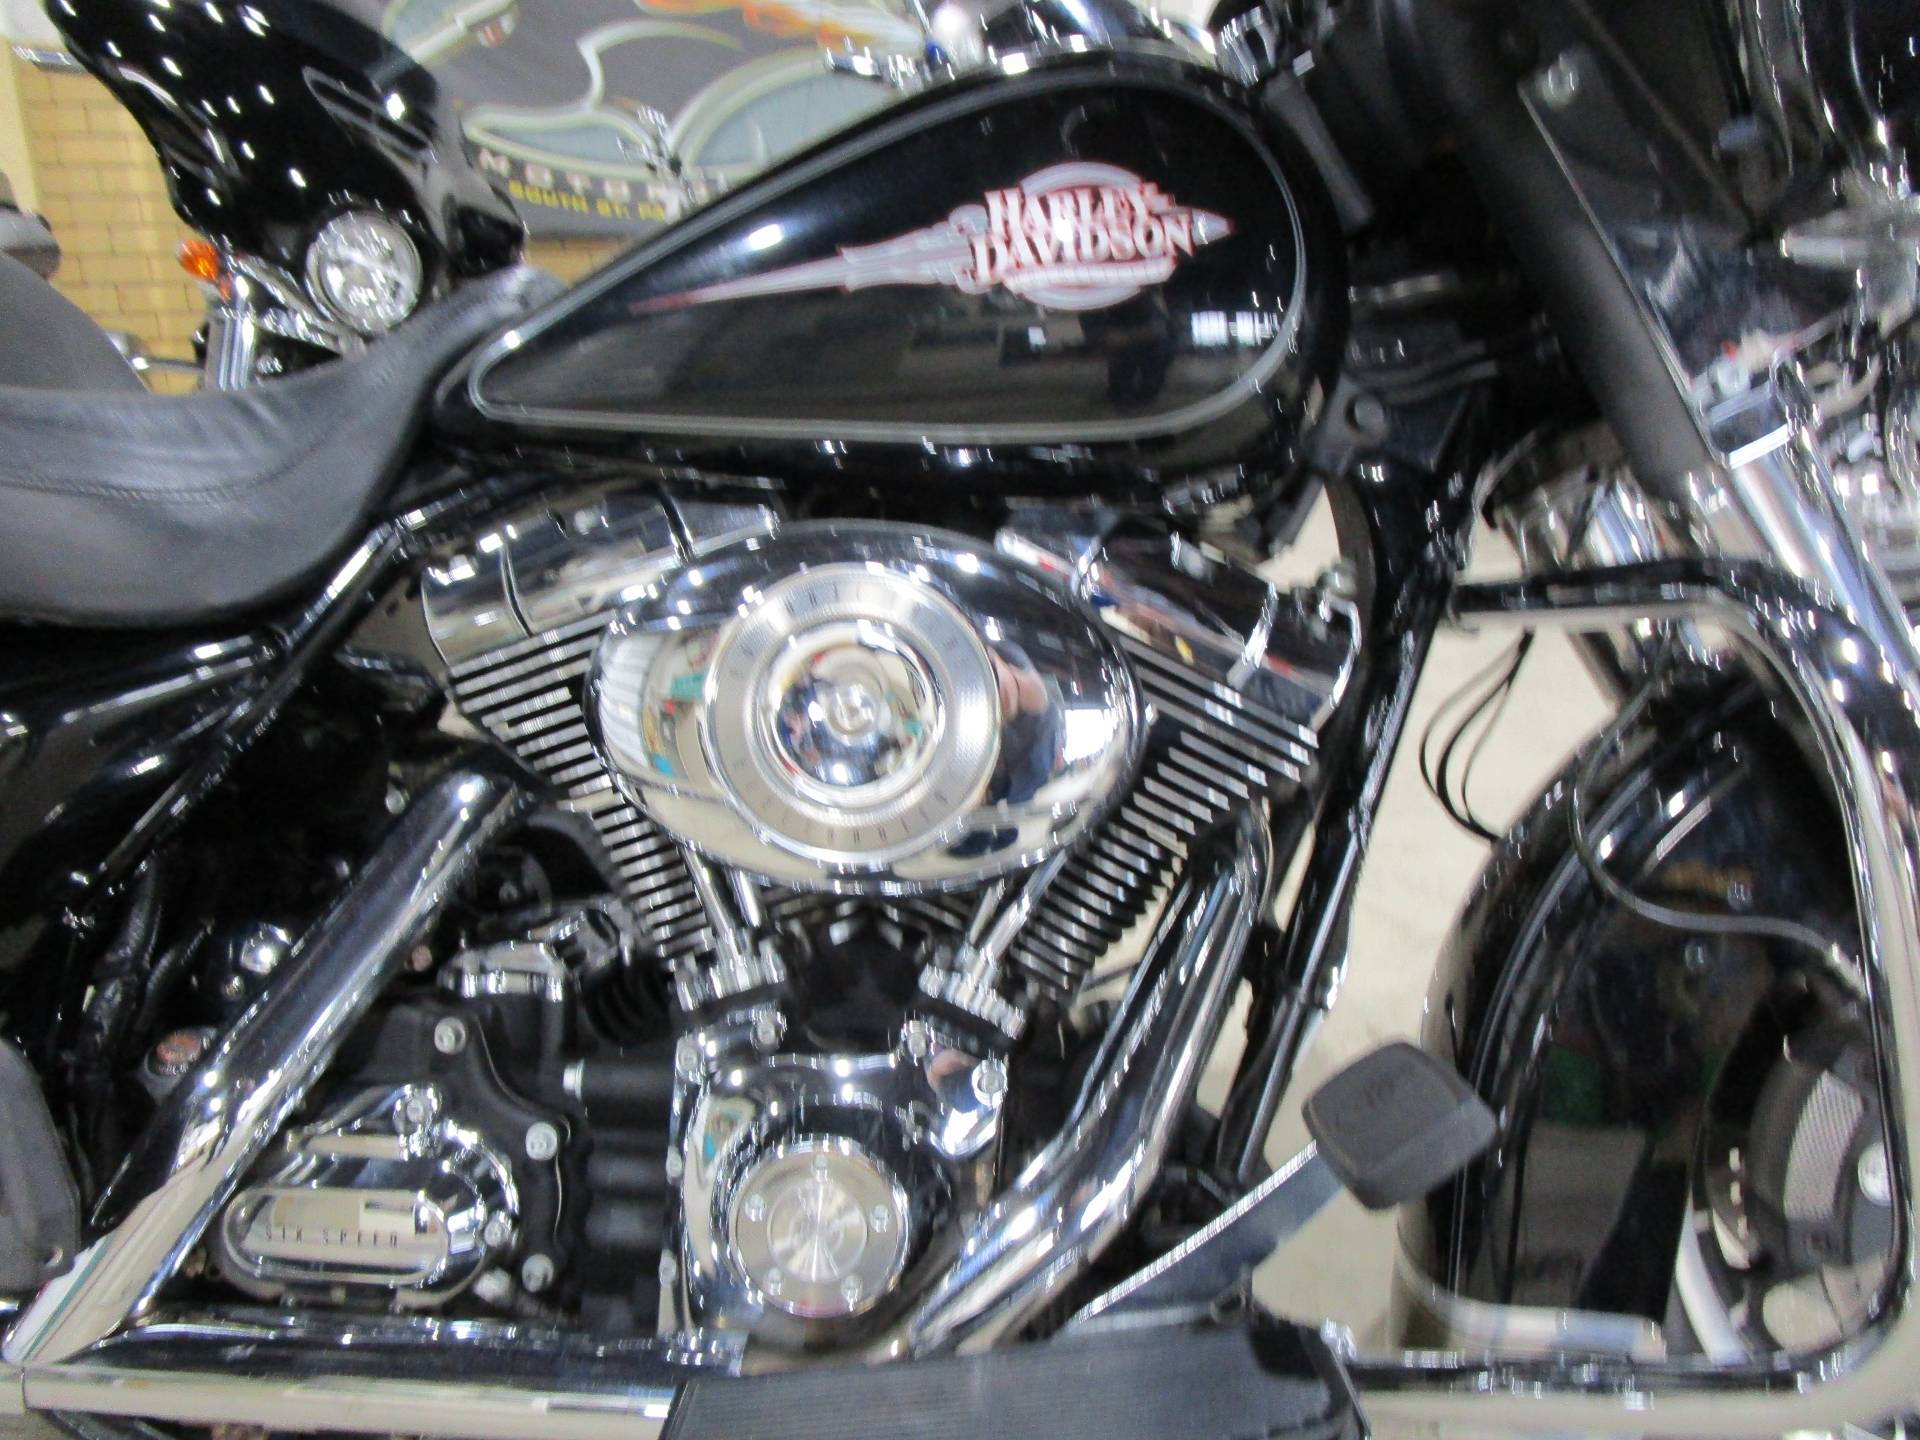 2008 Harley-Davidson FLHTC ELECTRA GLIDE CLASSIC in South Saint Paul, Minnesota - Photo 3